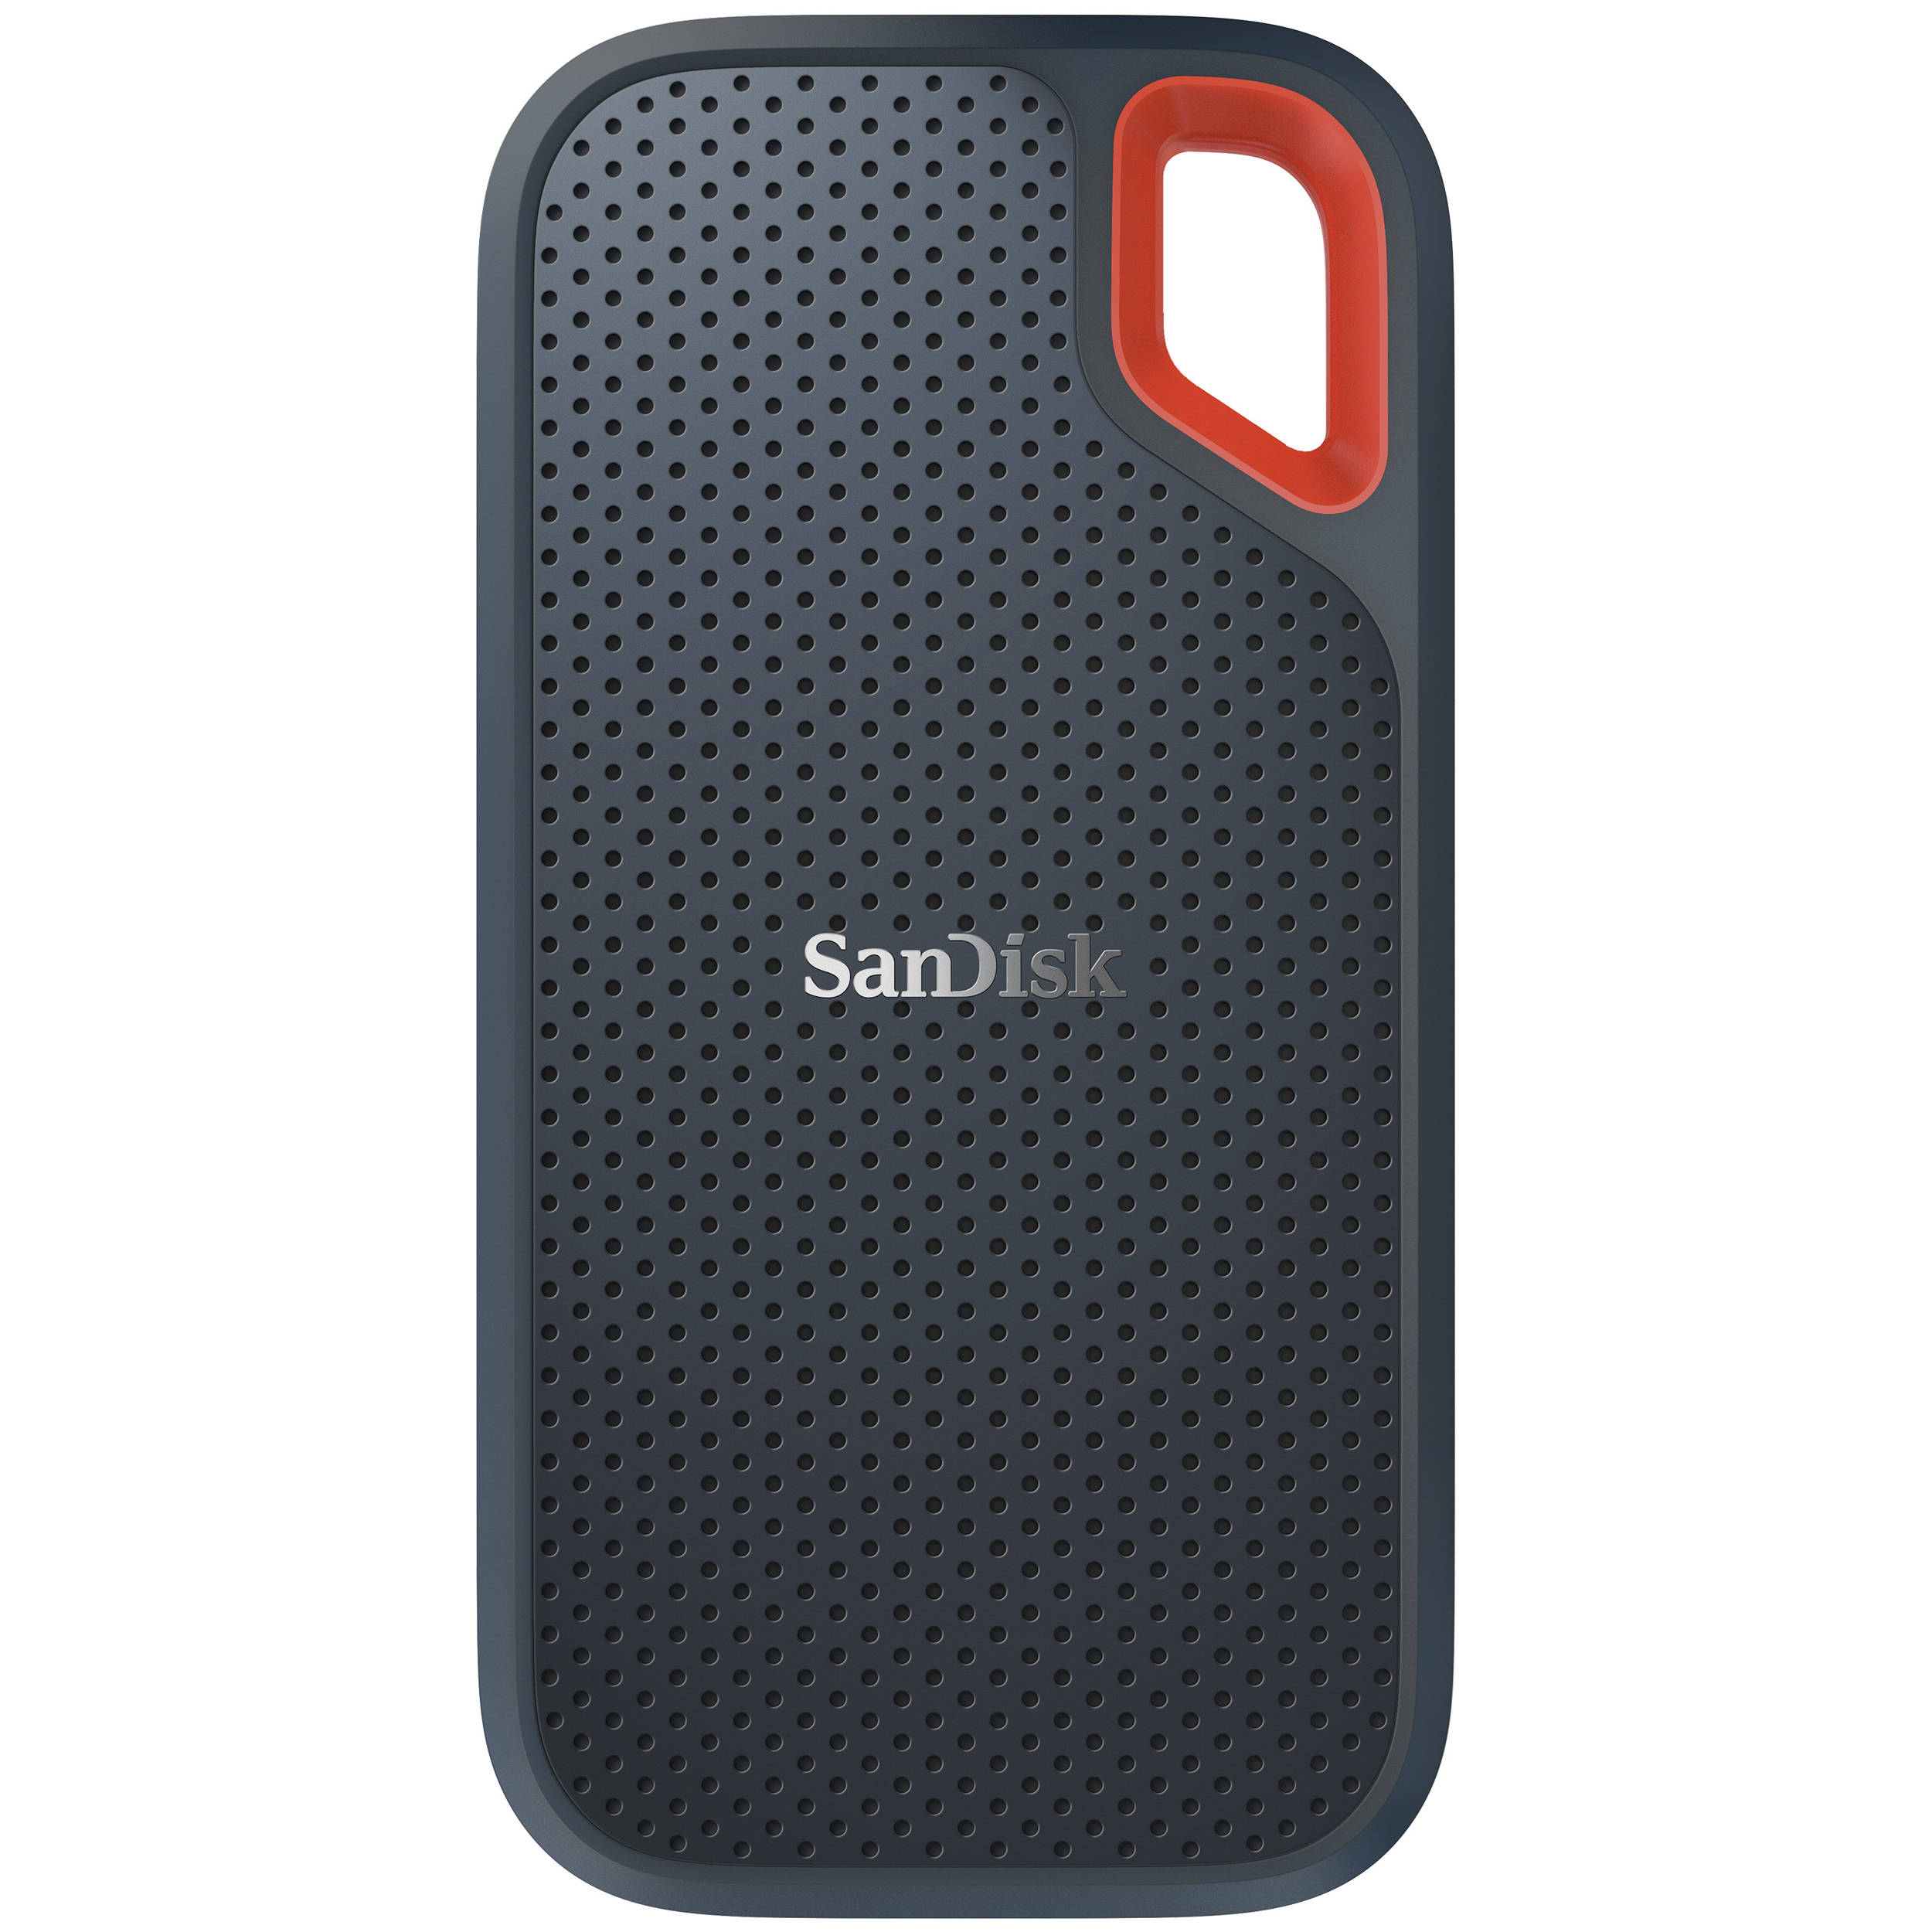 SanDisk 500GB Extreme Portable USB 3.1 Type-C External SSD Digital Media Memory Card/ Hard Drive